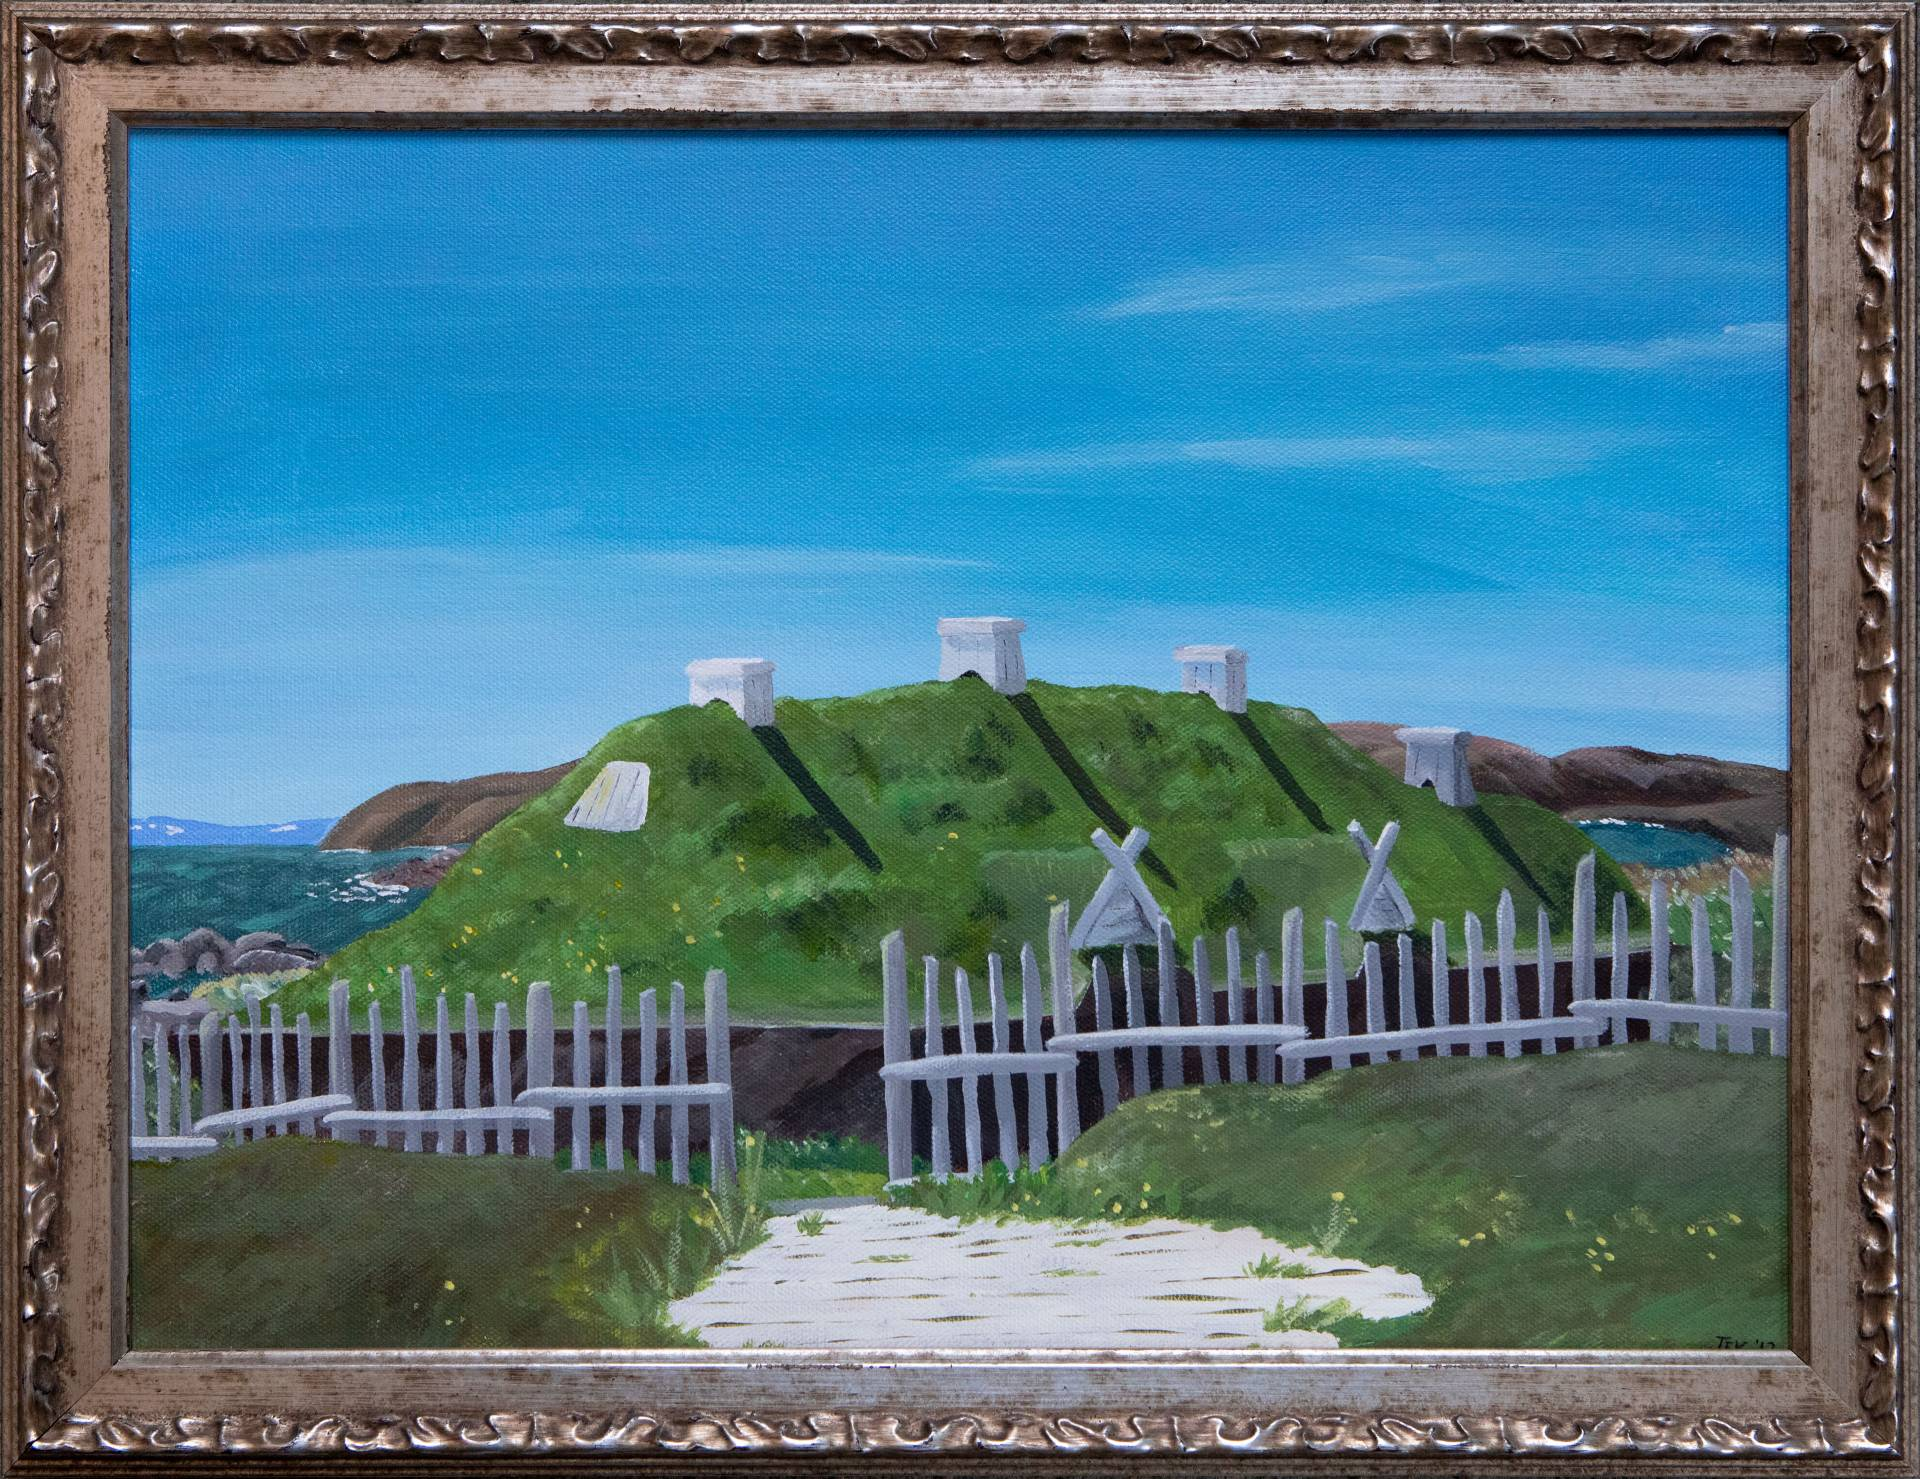 Painting of Newfoundland village